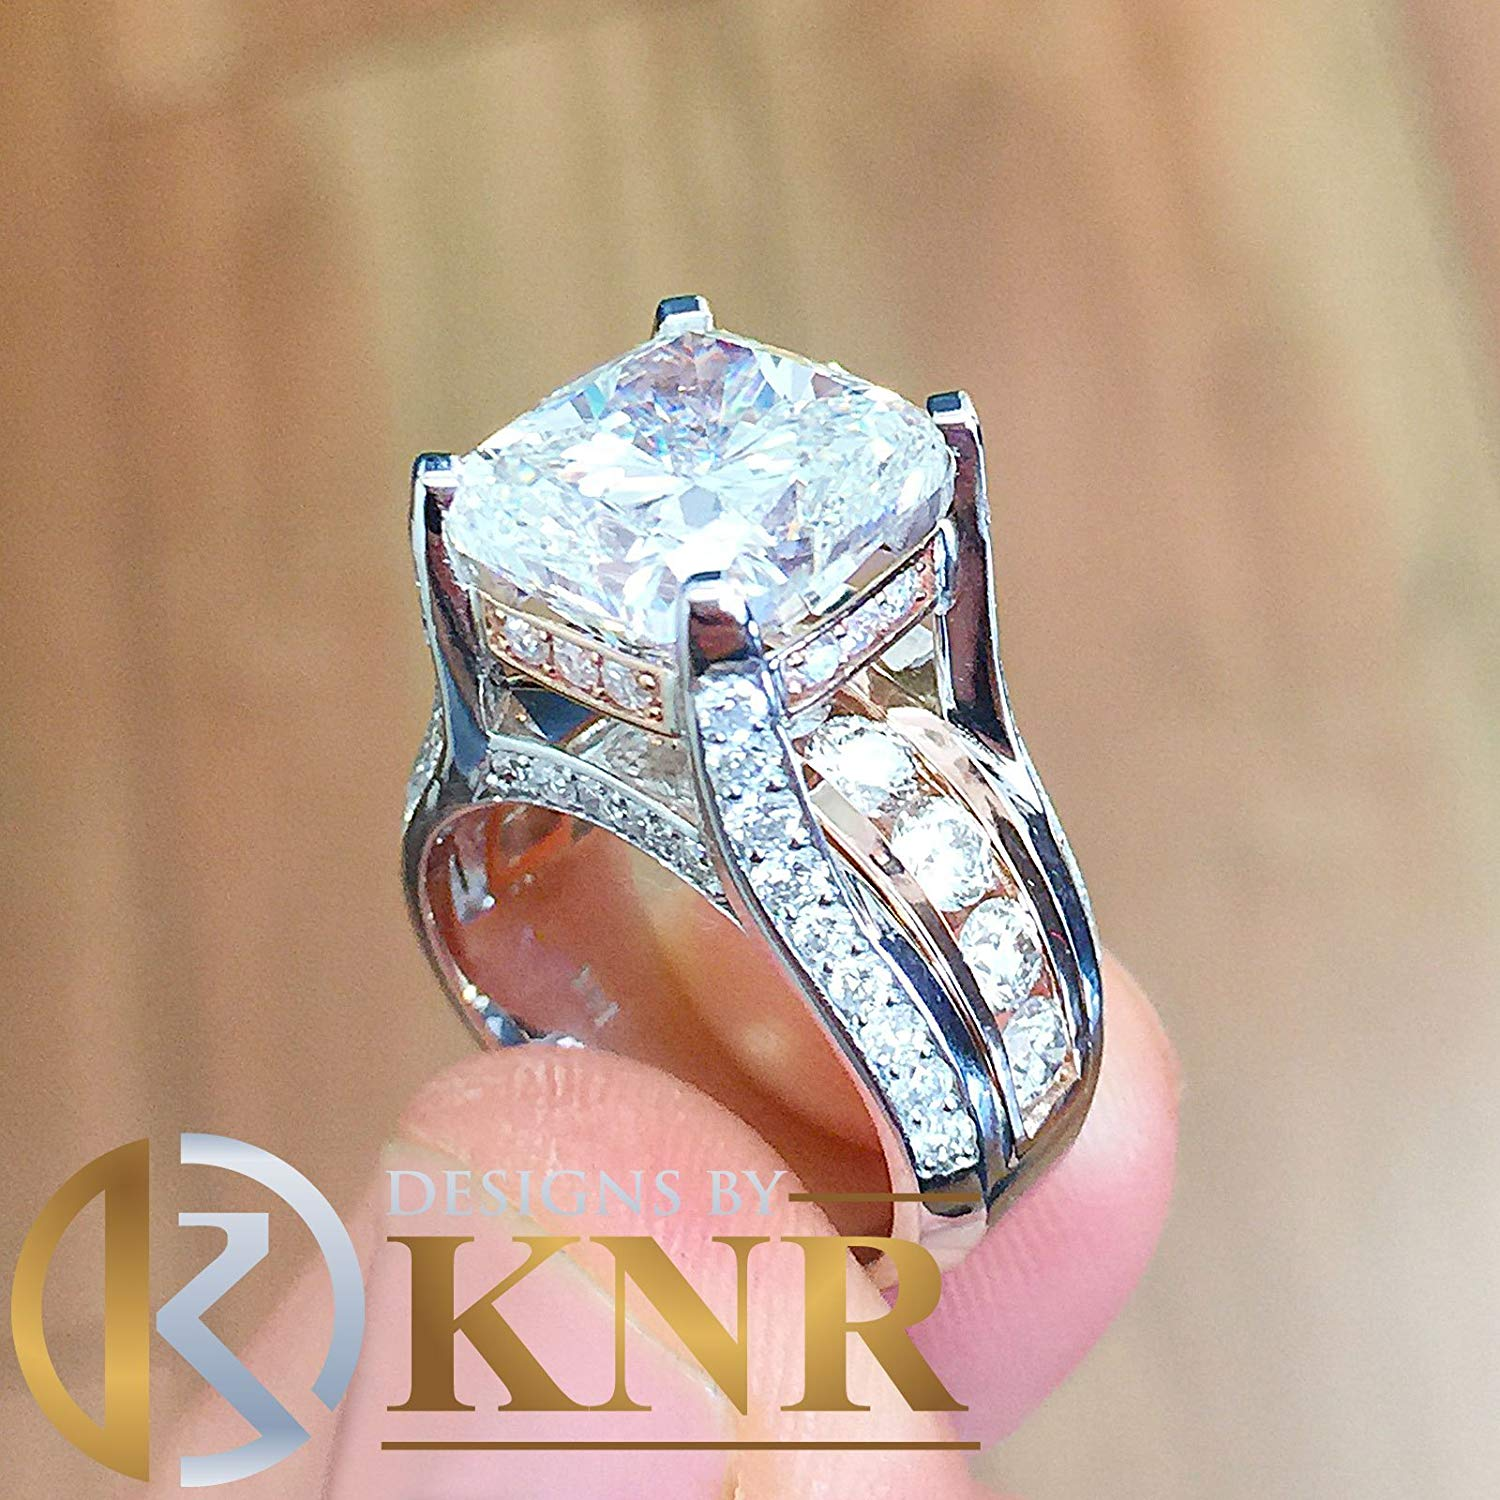 Engagement Rings Lovely Certified 5.00ct Big Round Moissanite Engagement Wedding Ring In 14k White Gold Bright In Colour Cz, Moissanite & Simulated